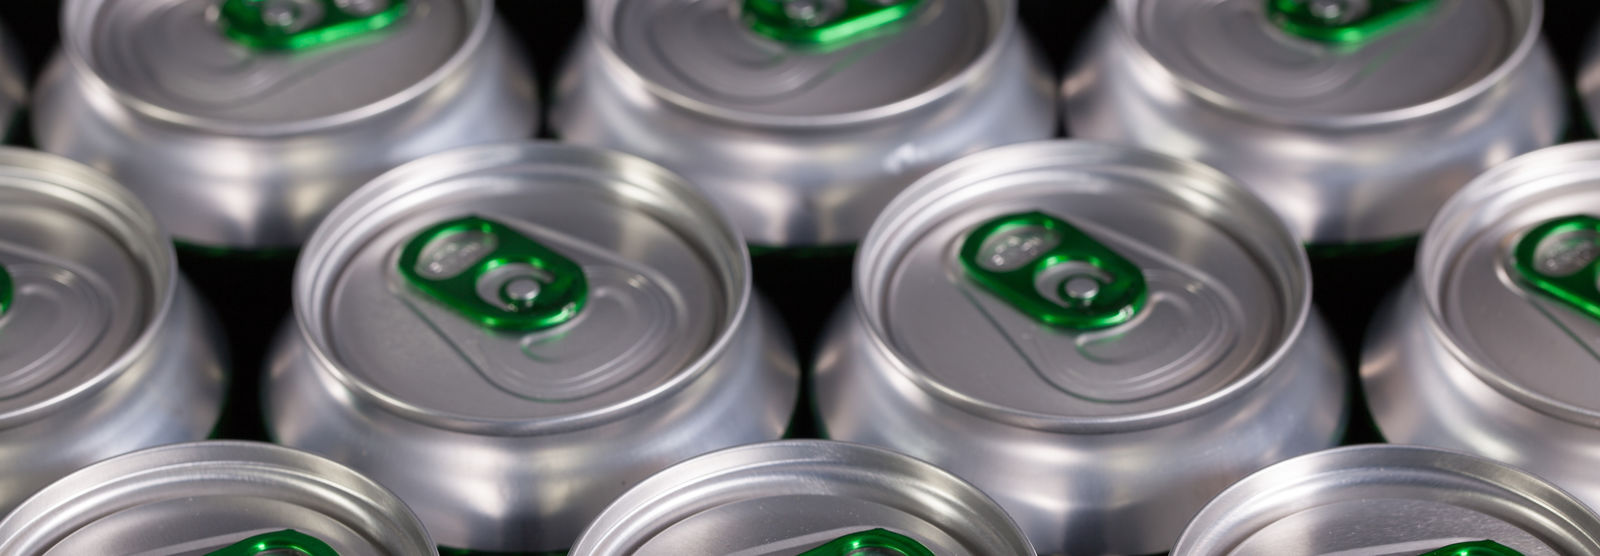 green tabs on top of aluminum Heineken cans in a group